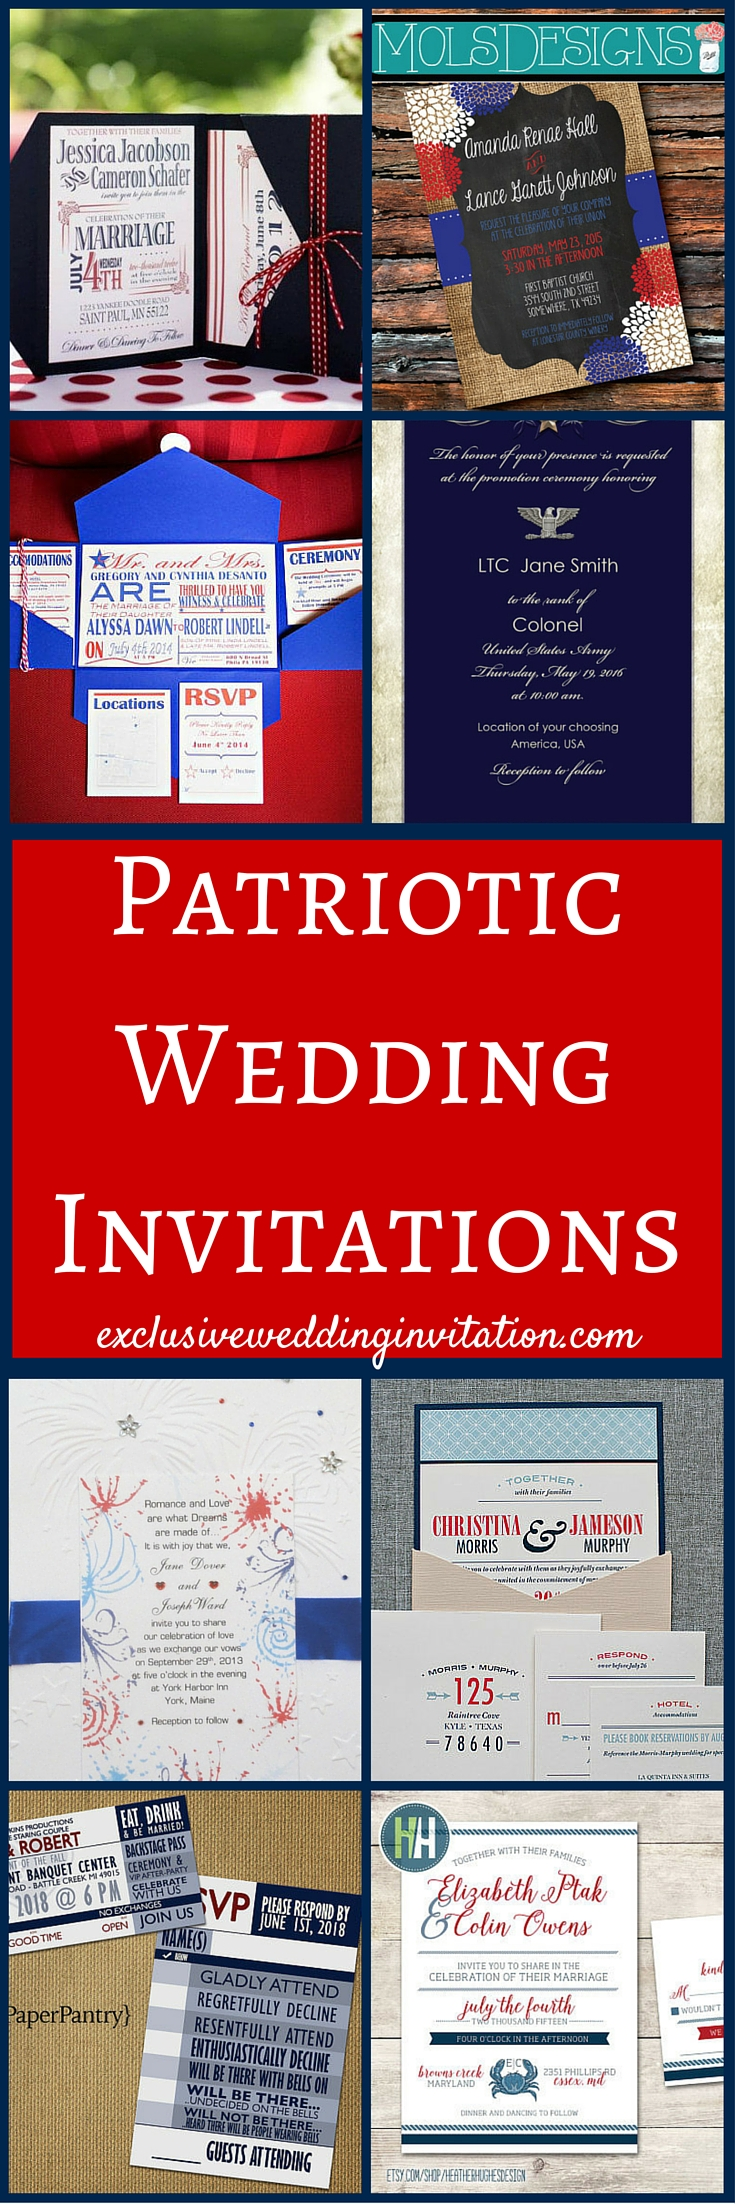 Patriotic Wedding Invitations